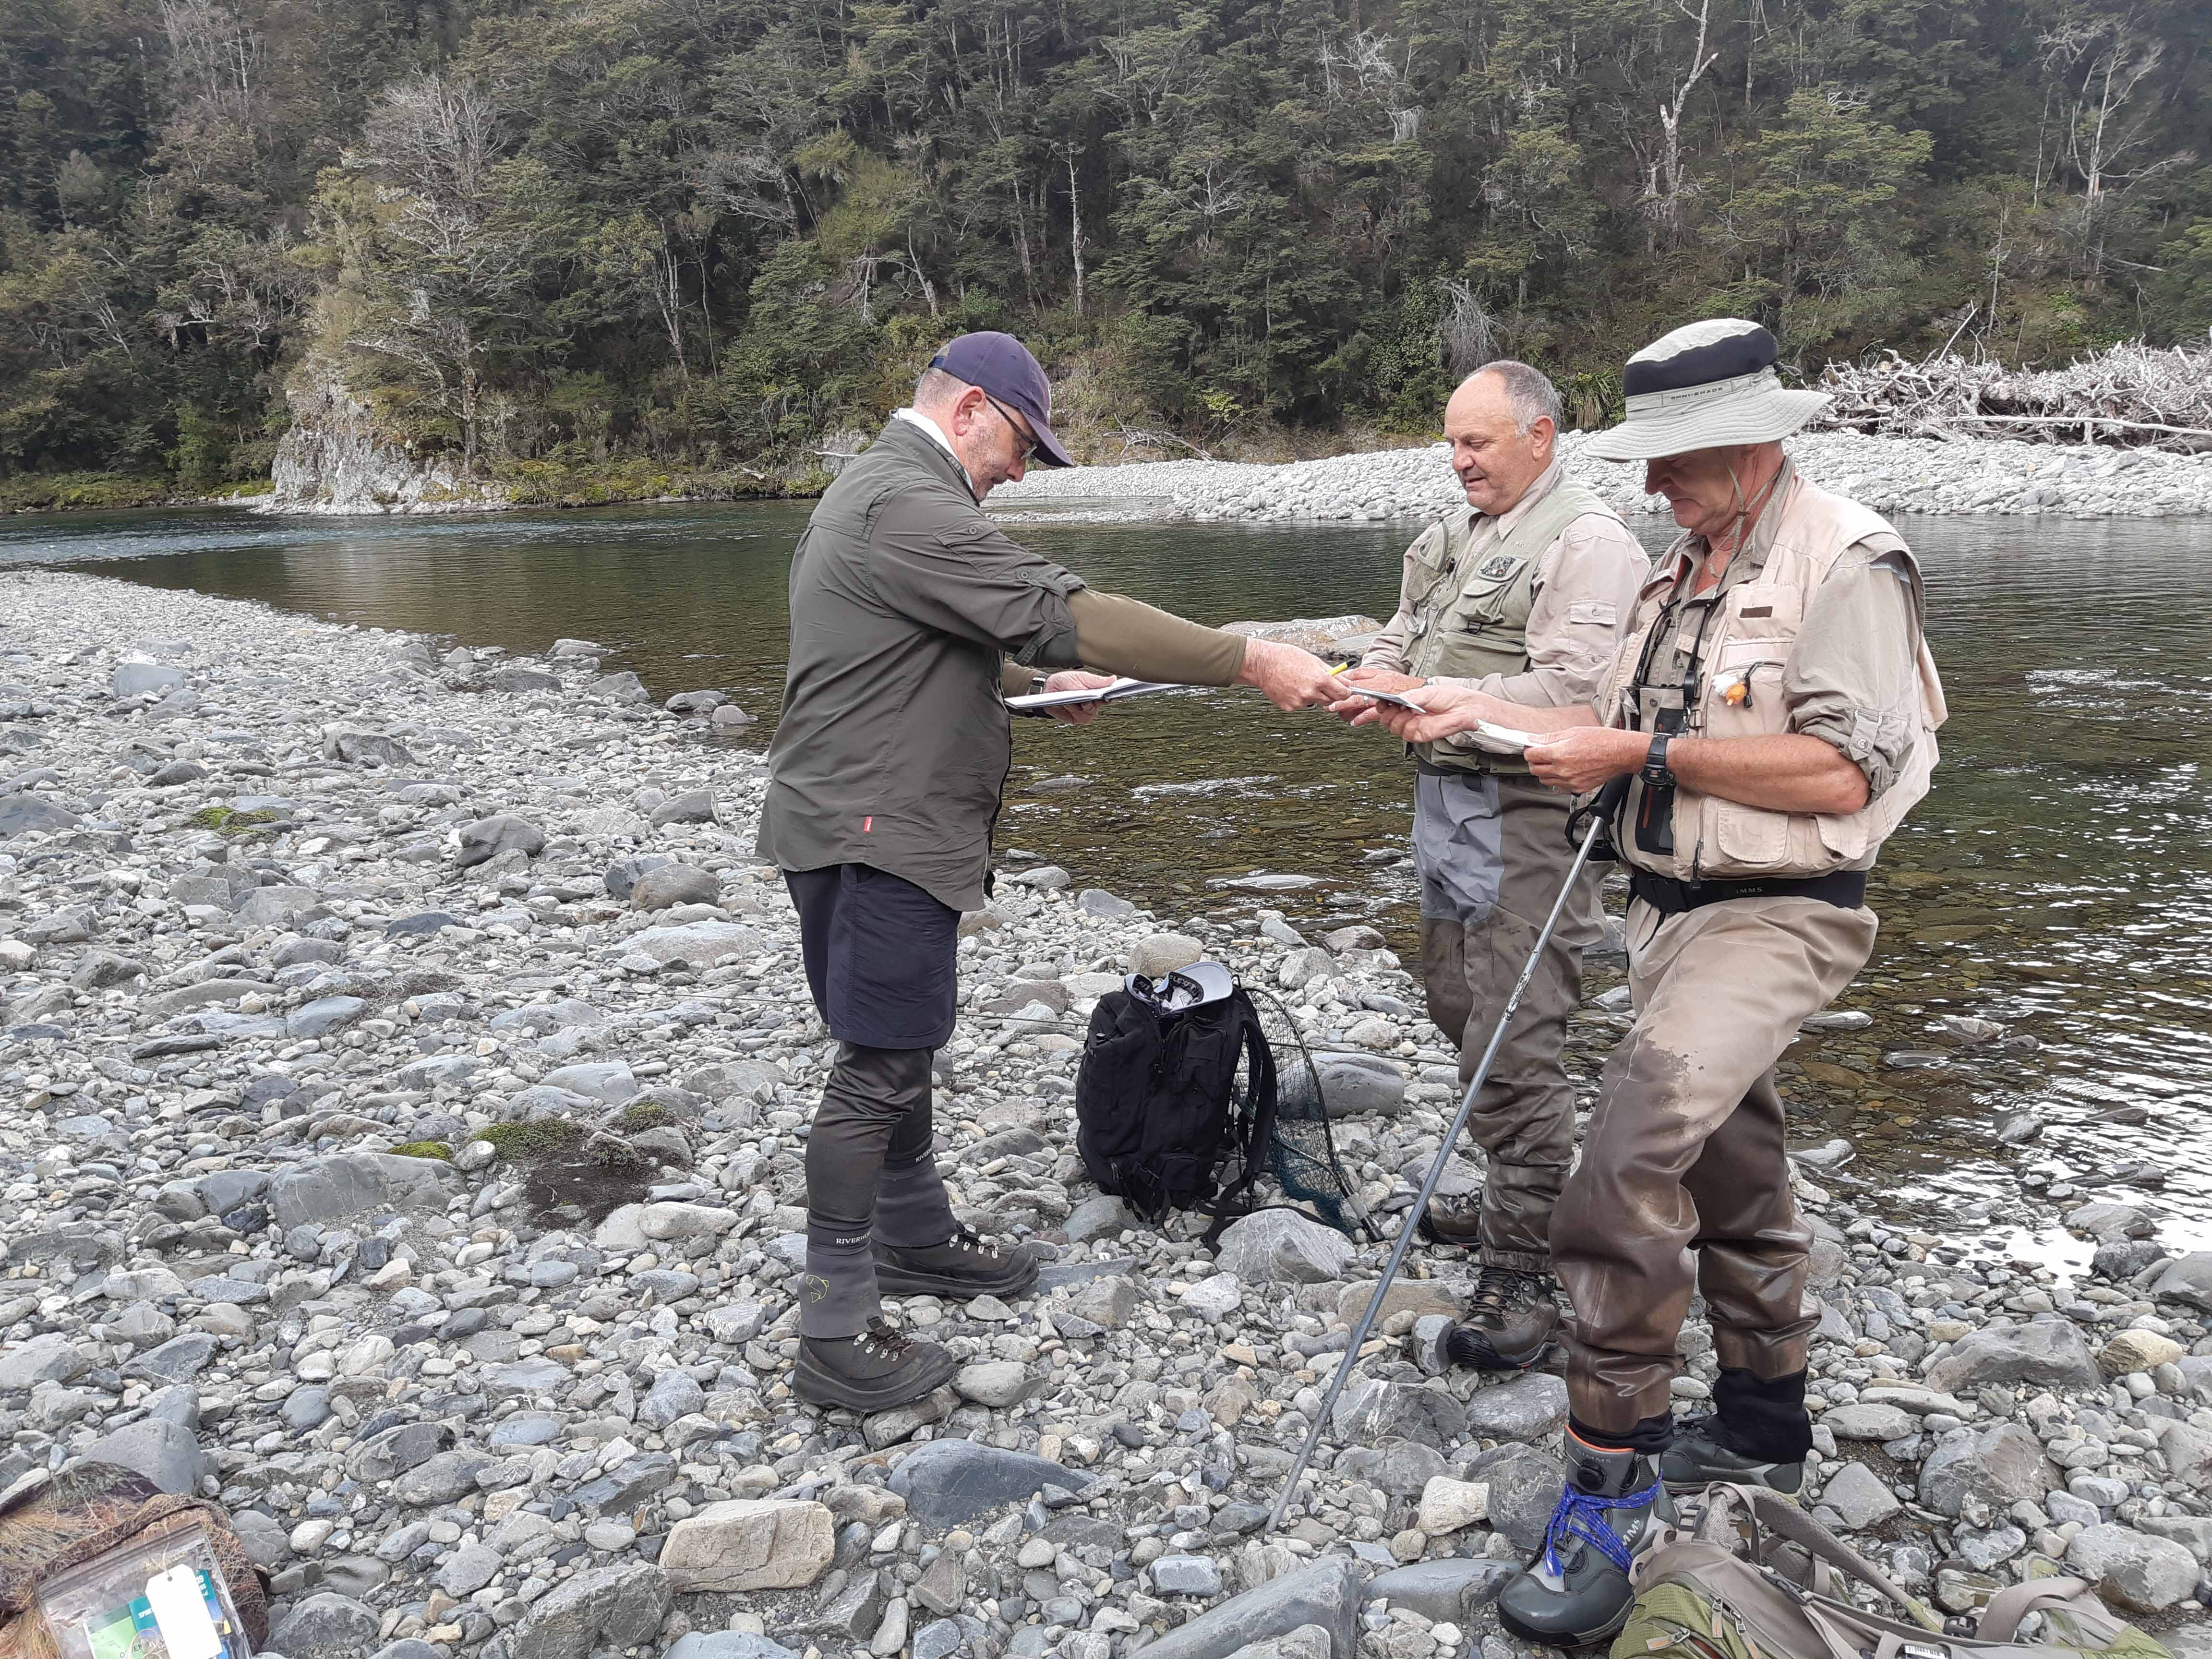 W A Fish Game ranger checking backcountry licences in the Upper Rangitikei Hamish Carnachan